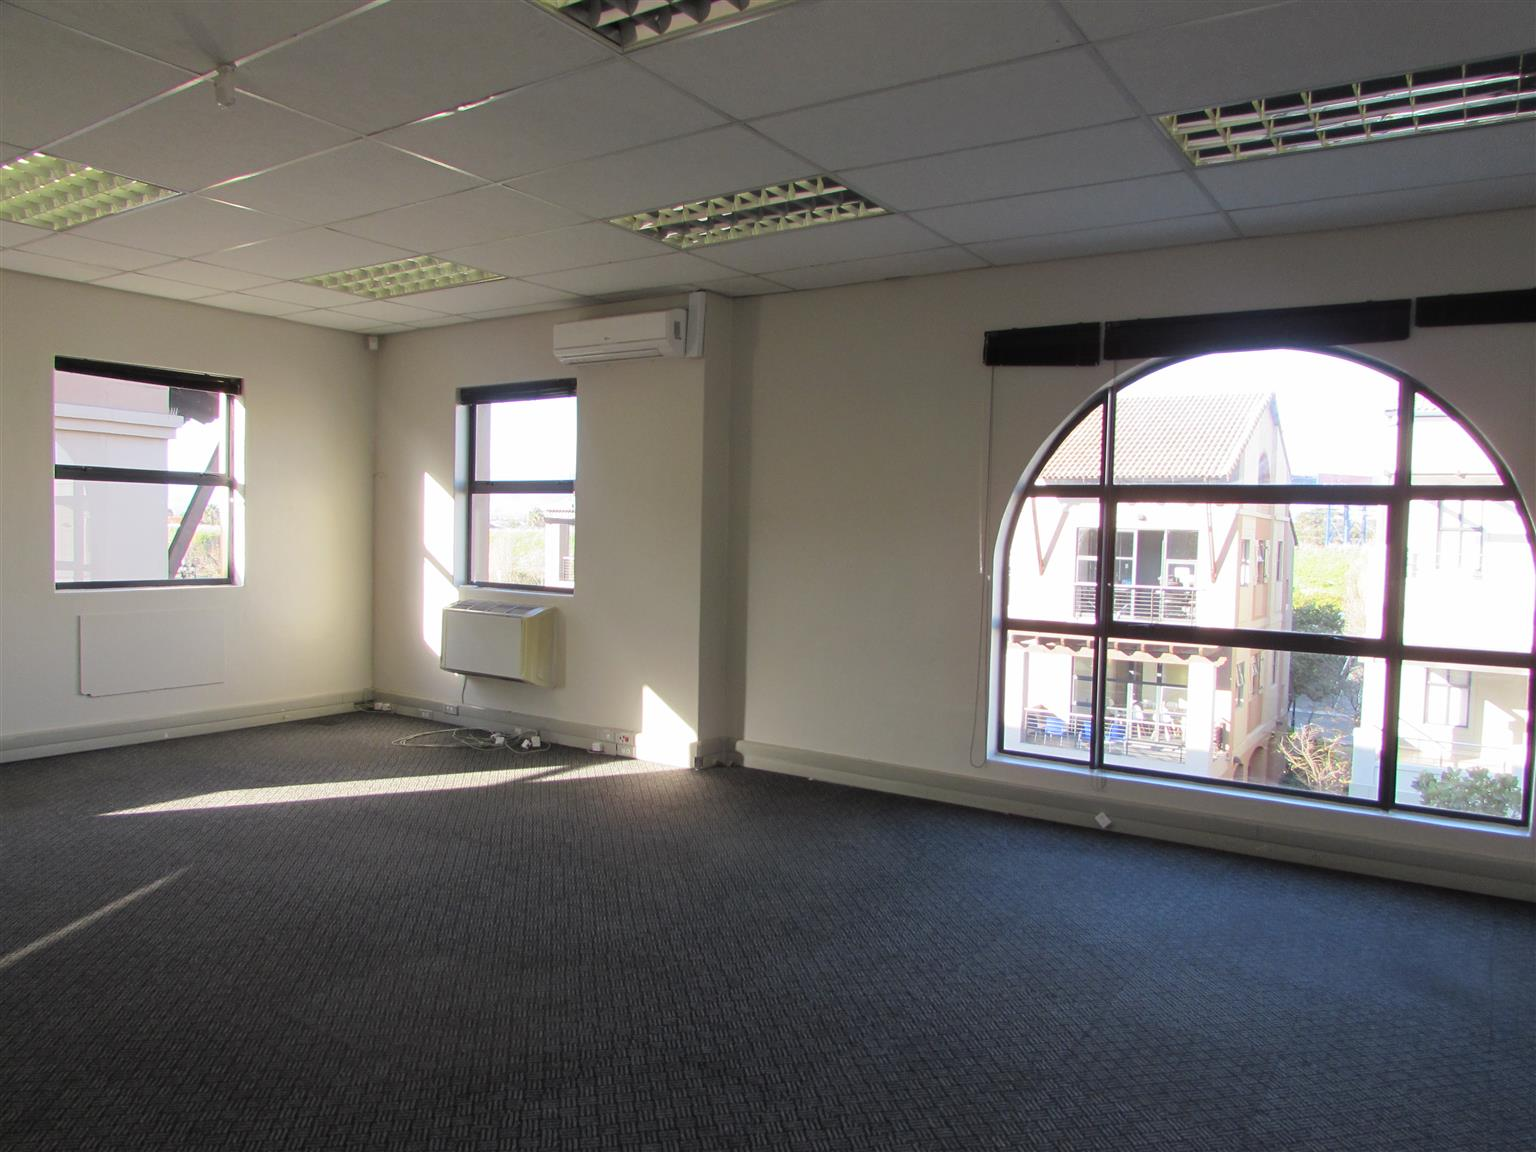 CENTURY CITY: 250m2 Building to Let